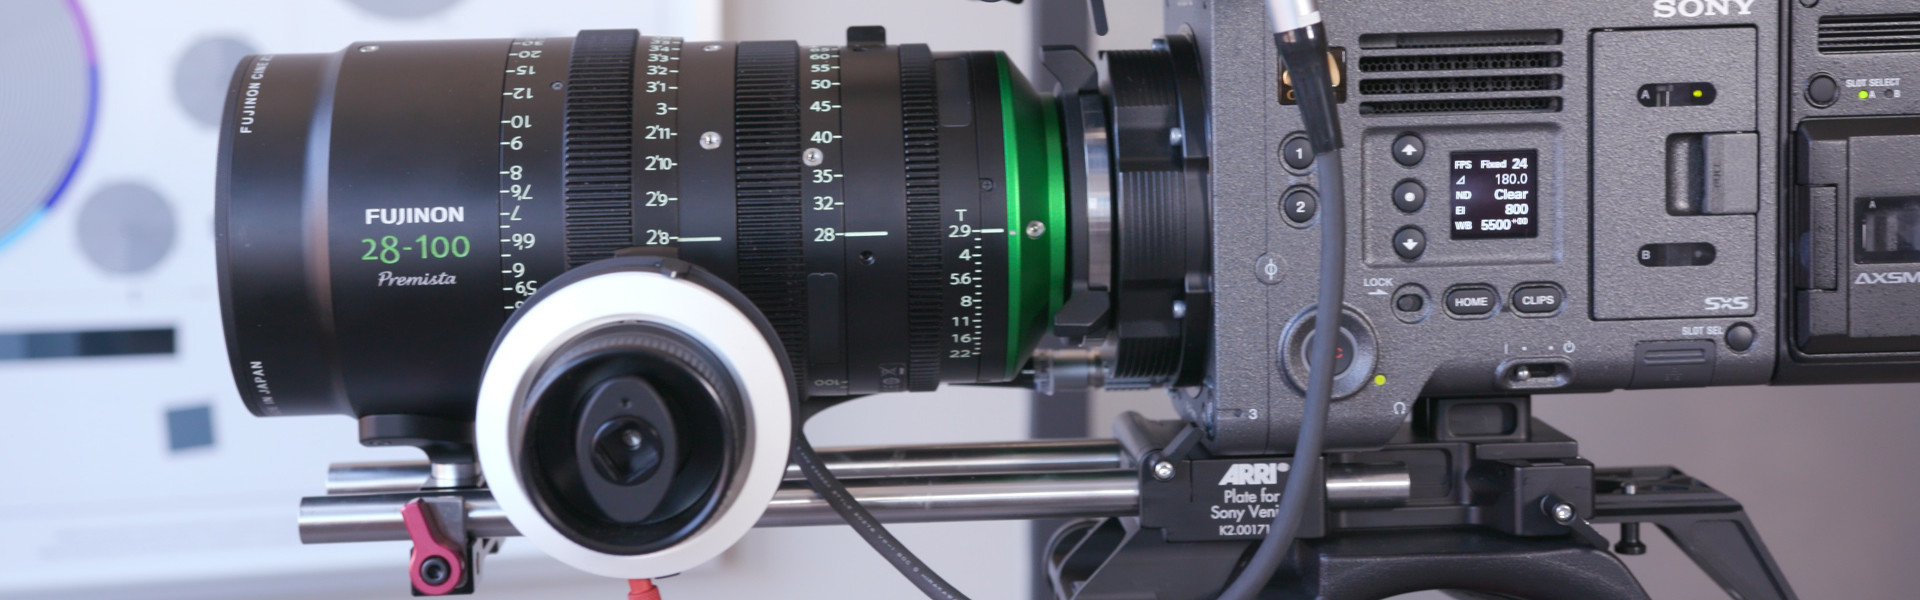 Header image for article At the Bench: First Look at the Fujinon Premista 28-100mm Zoom